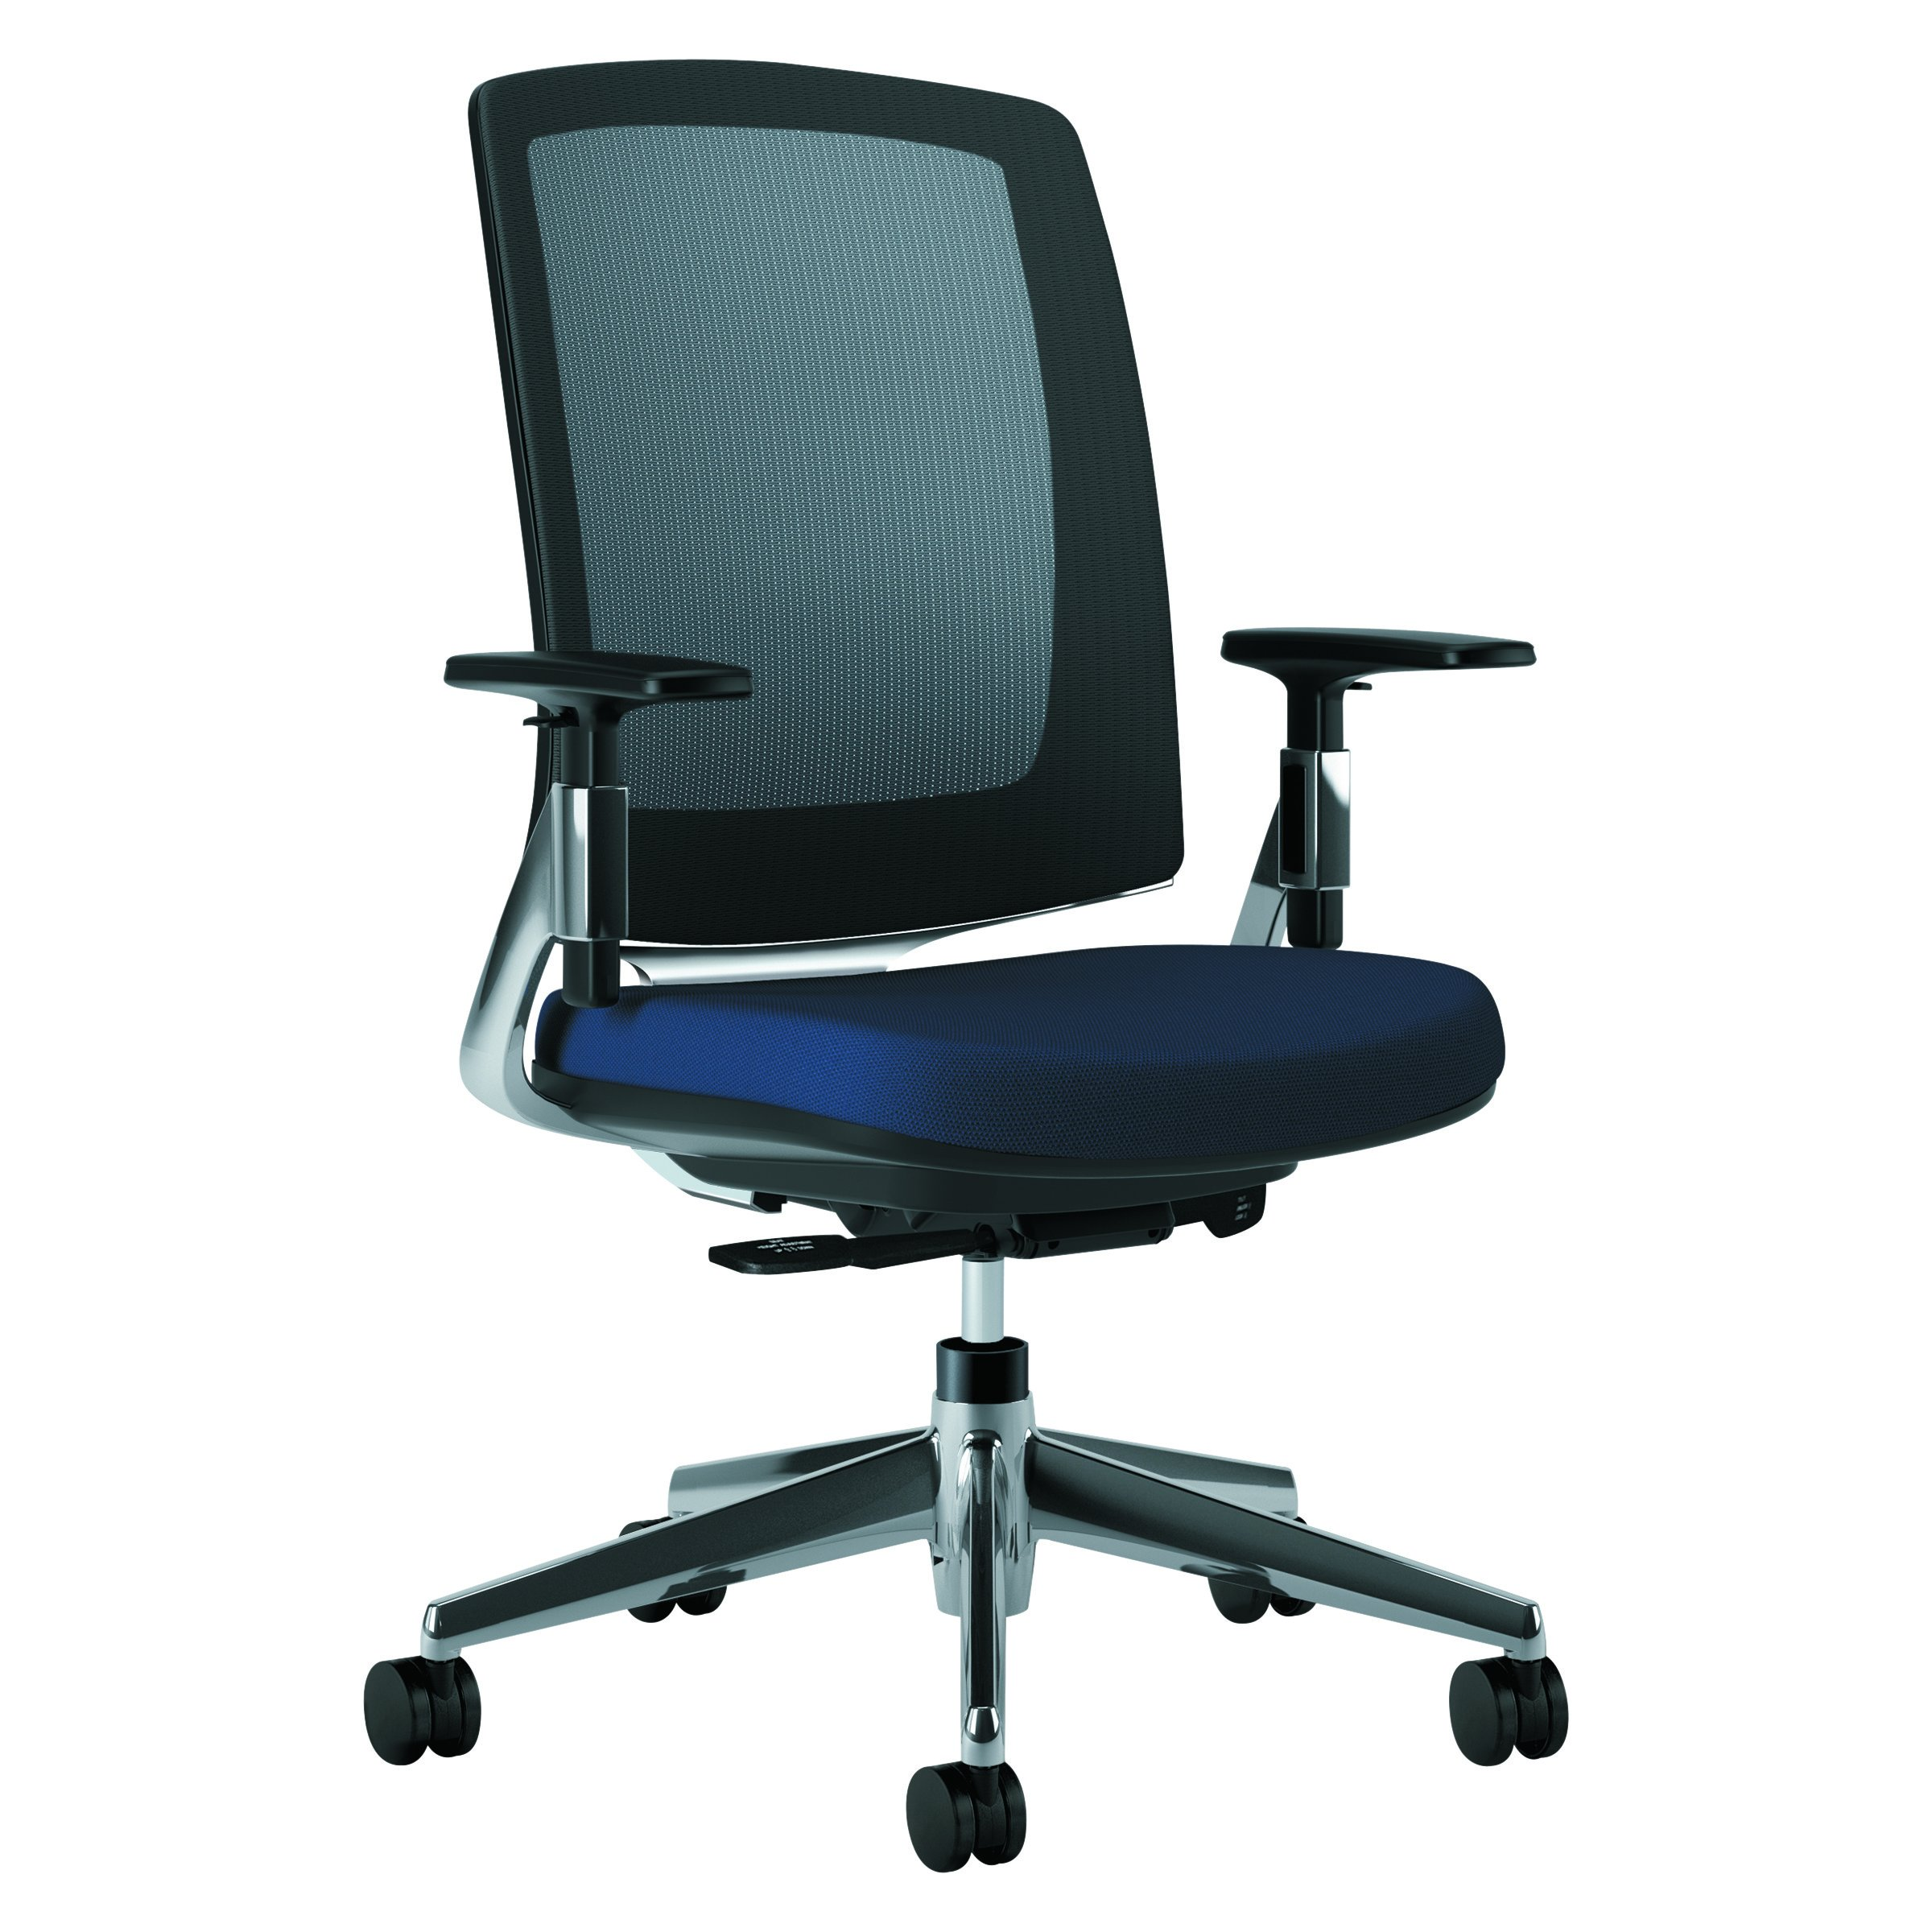 HON Lota Mid-Back Office Chair - Mesh Back Computer Chair for Office or Computer Desk, Navy/Black (H2283)